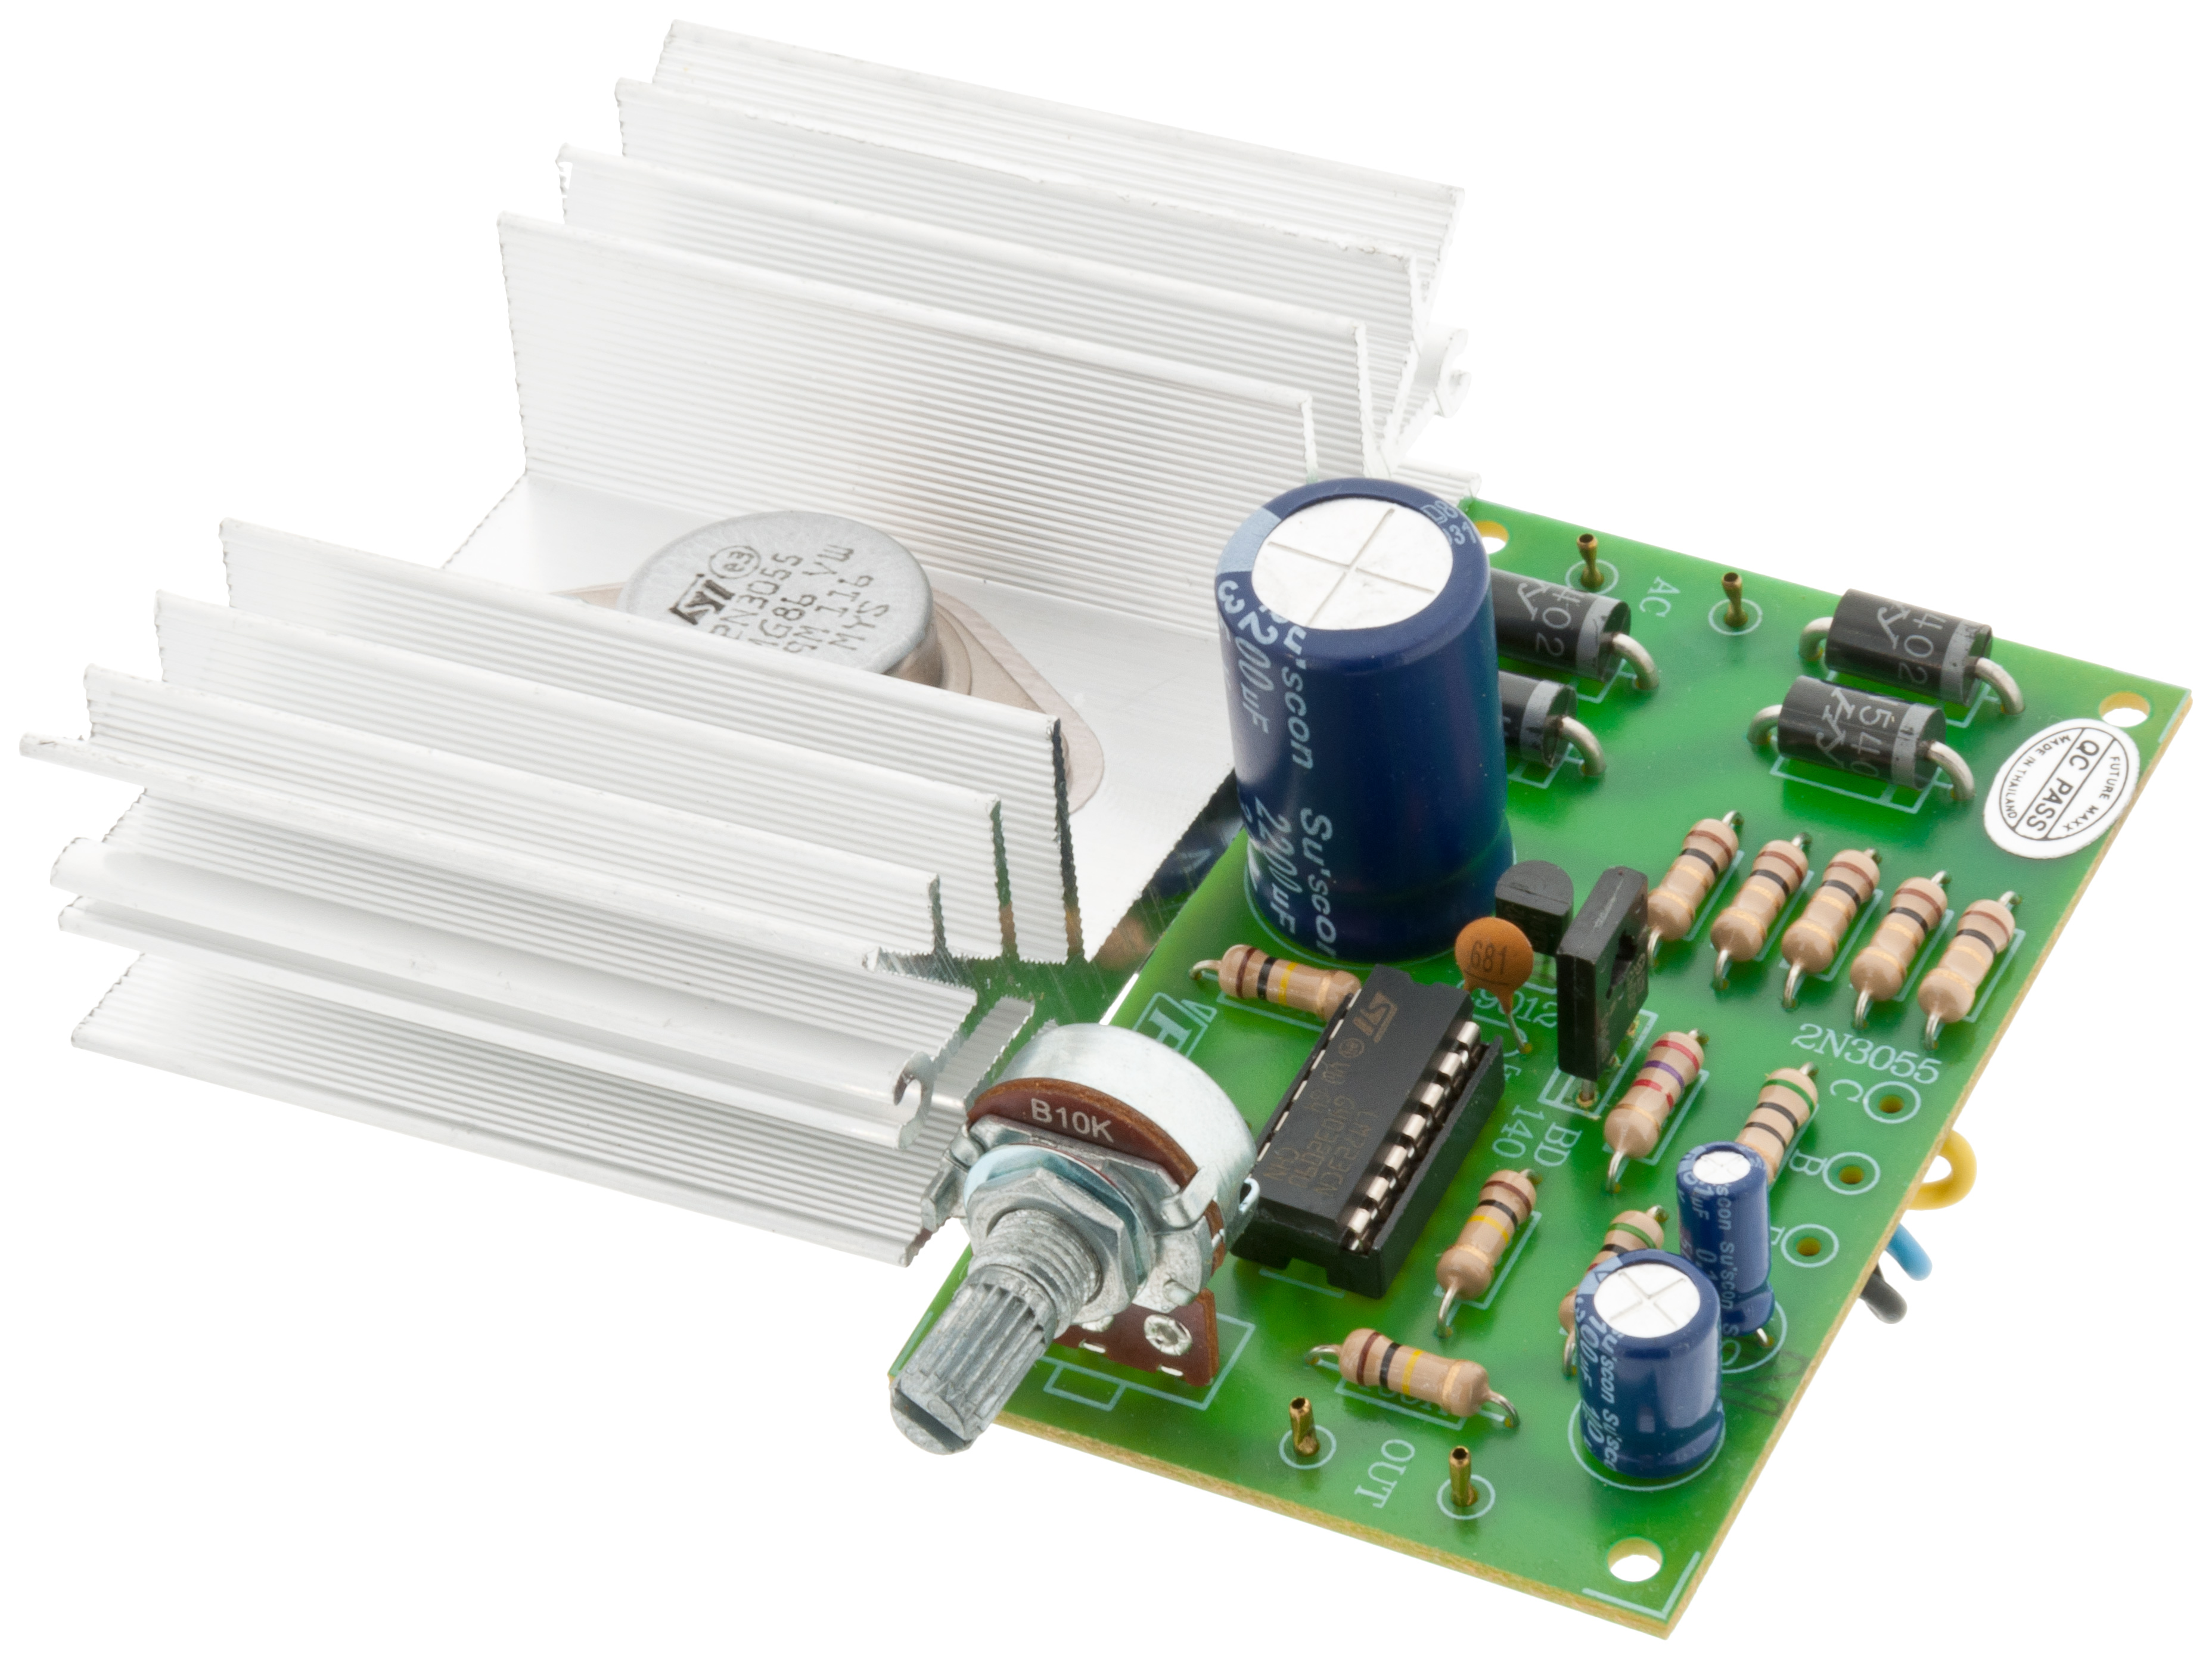 Buy Adjustable Power Supply 0 30v 3a At The Right Price Electrokit Circuit Using Transistor 2n3055 Homemade